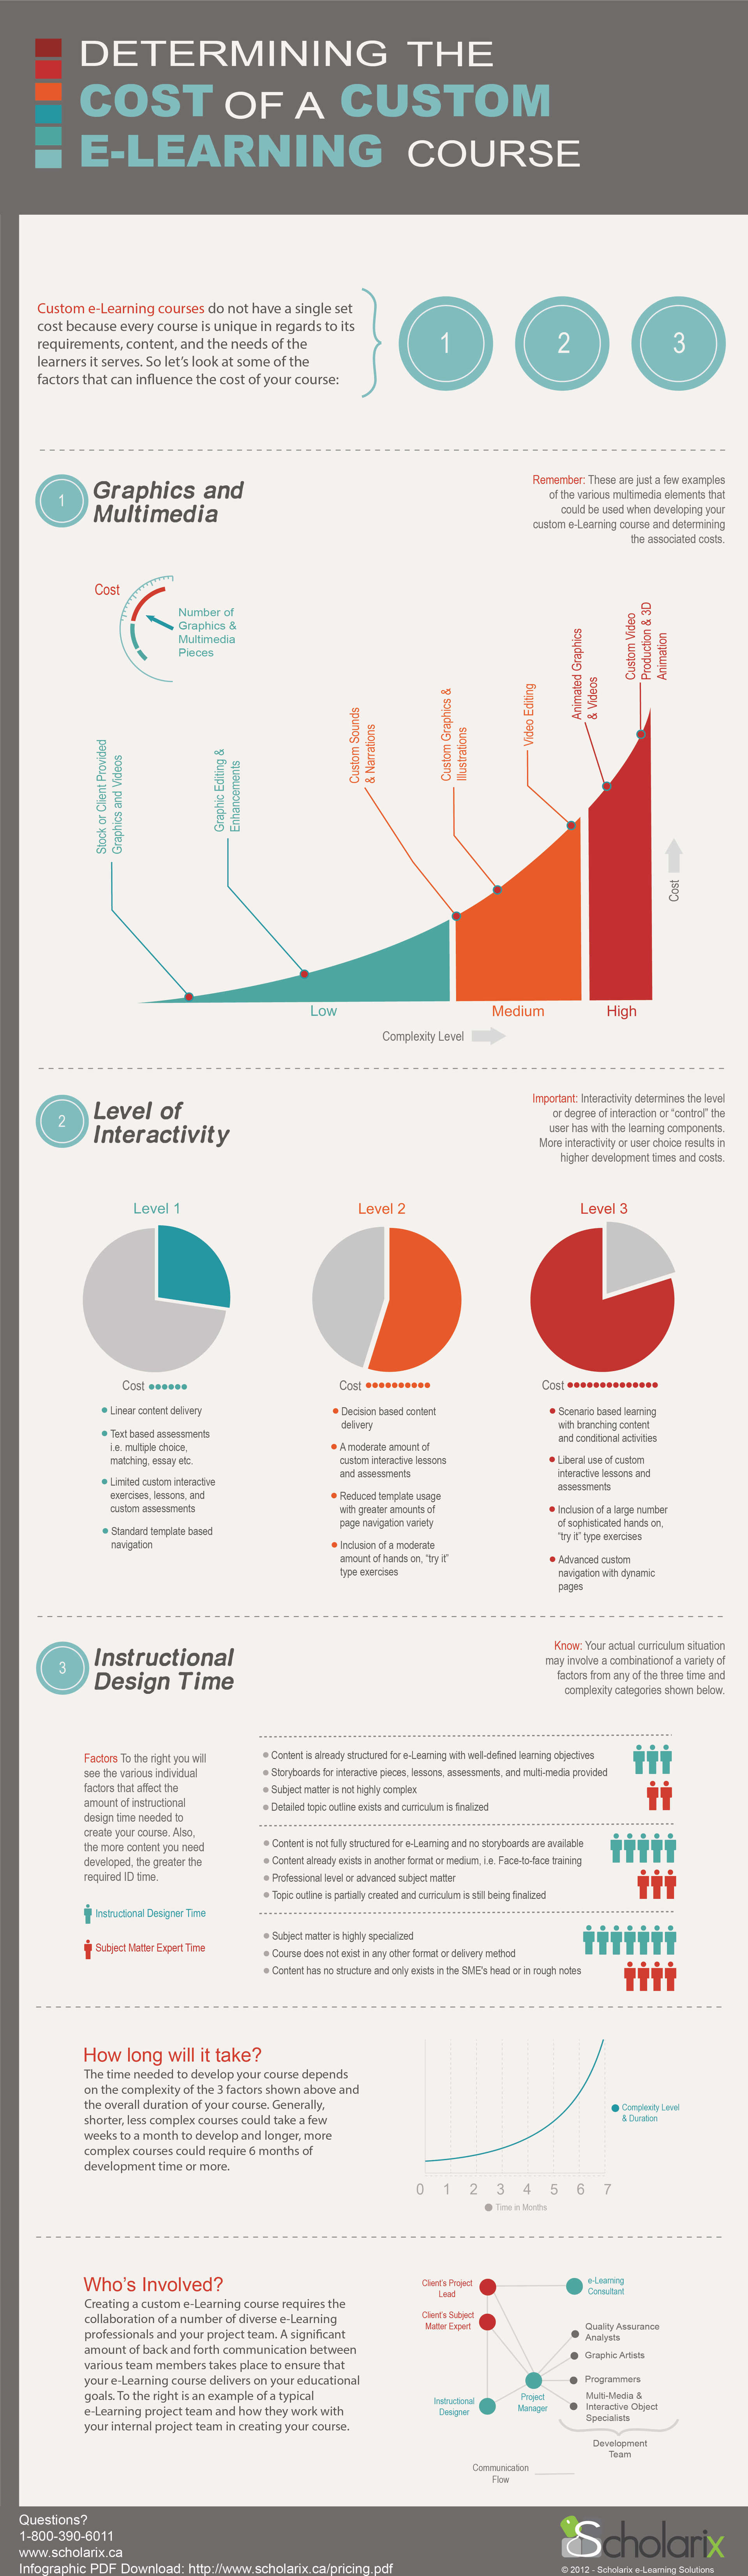 What is the cost of an eLearning course? - Infographic